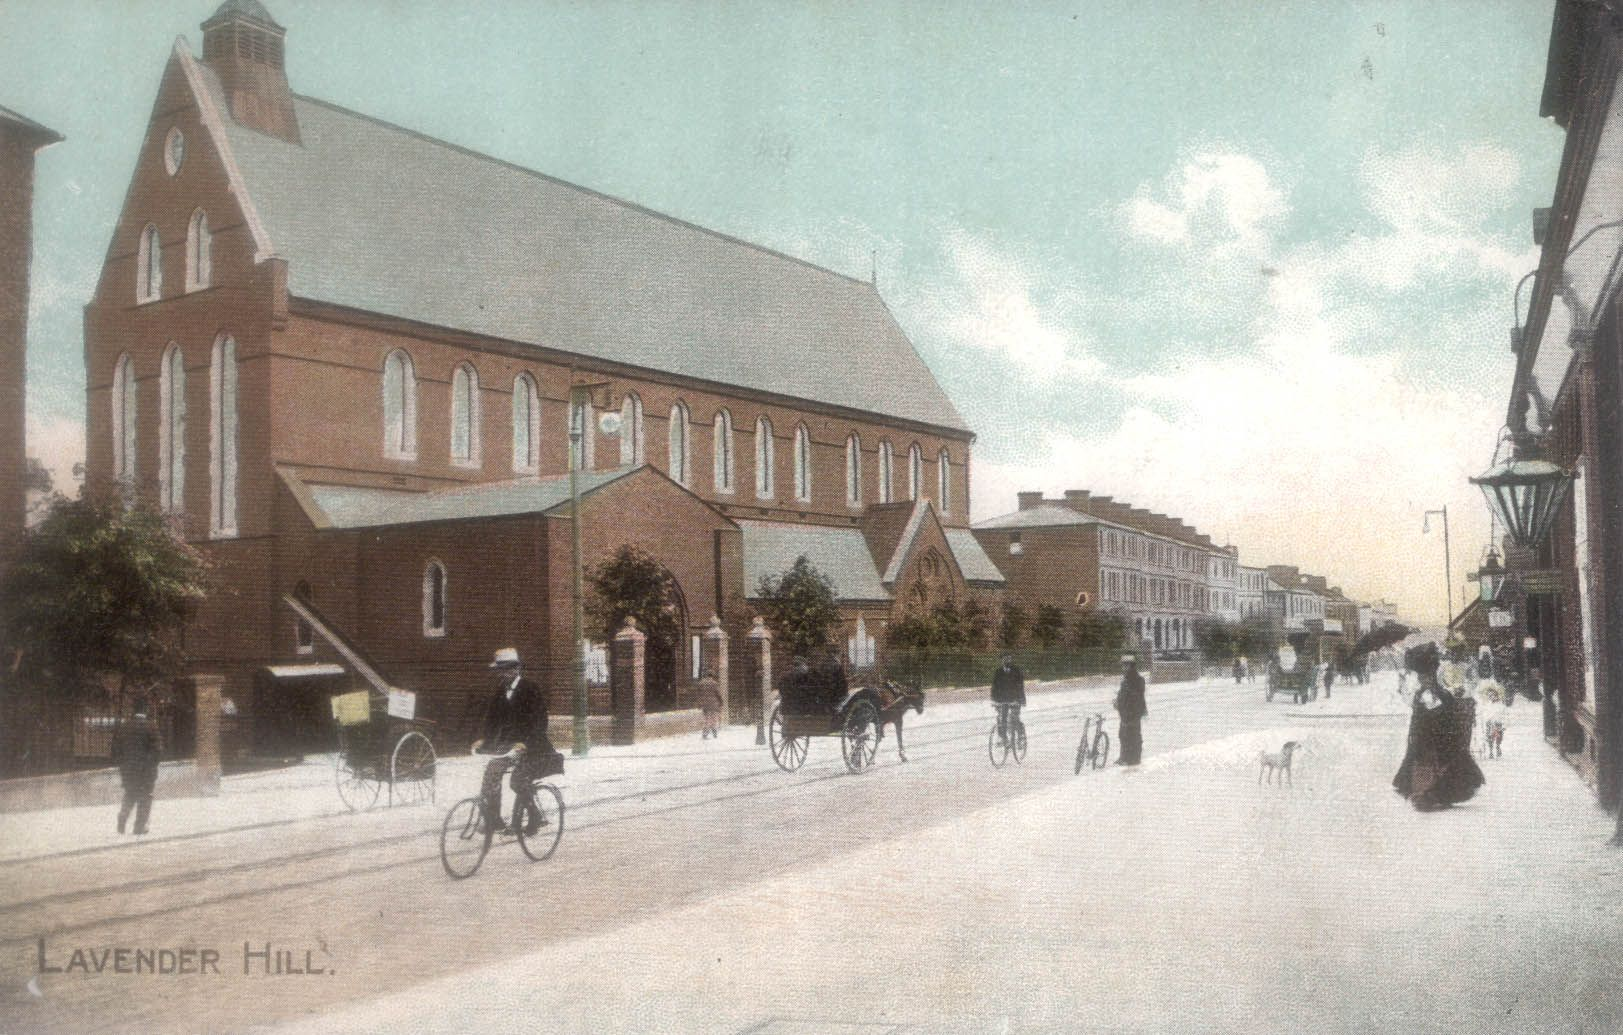 Ascension Church Lavender Hill Battersea c 1890 from their own website